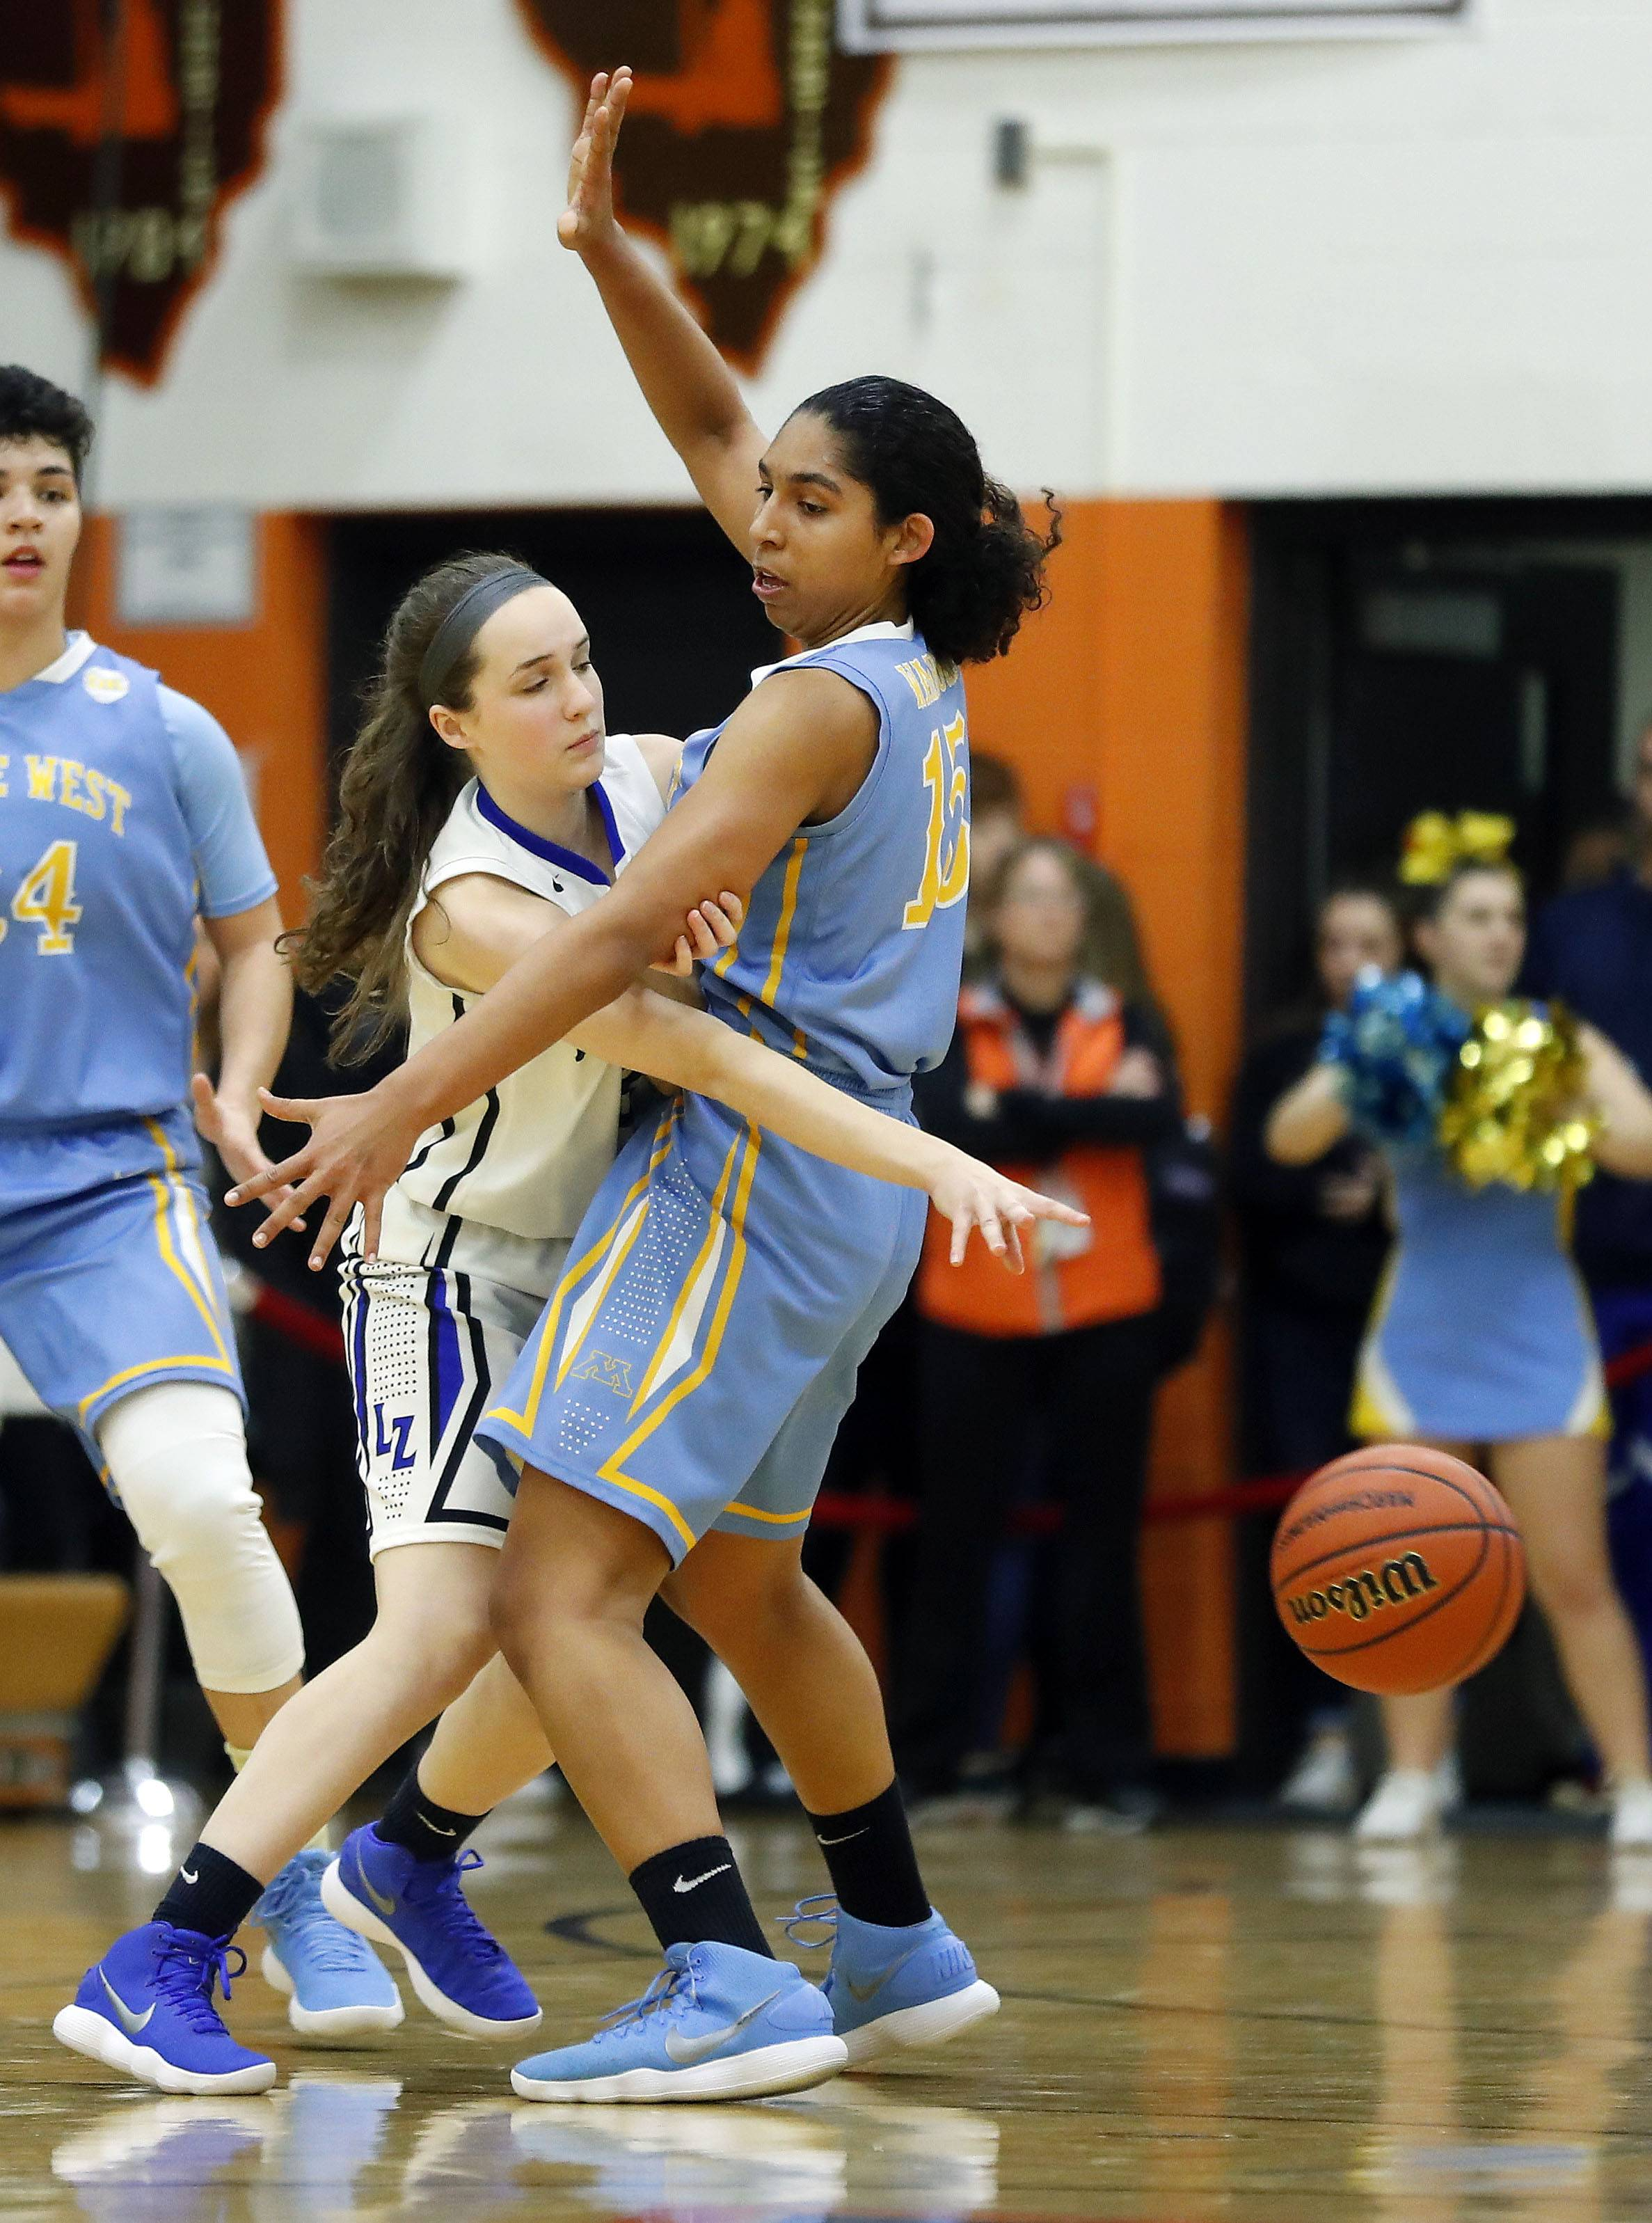 Lake Zurich's Margueret Spear, left, passes arounds Maine West's Rachel Kent during the Class 4A Hersey supersectional in Arlington Heights on Monday.